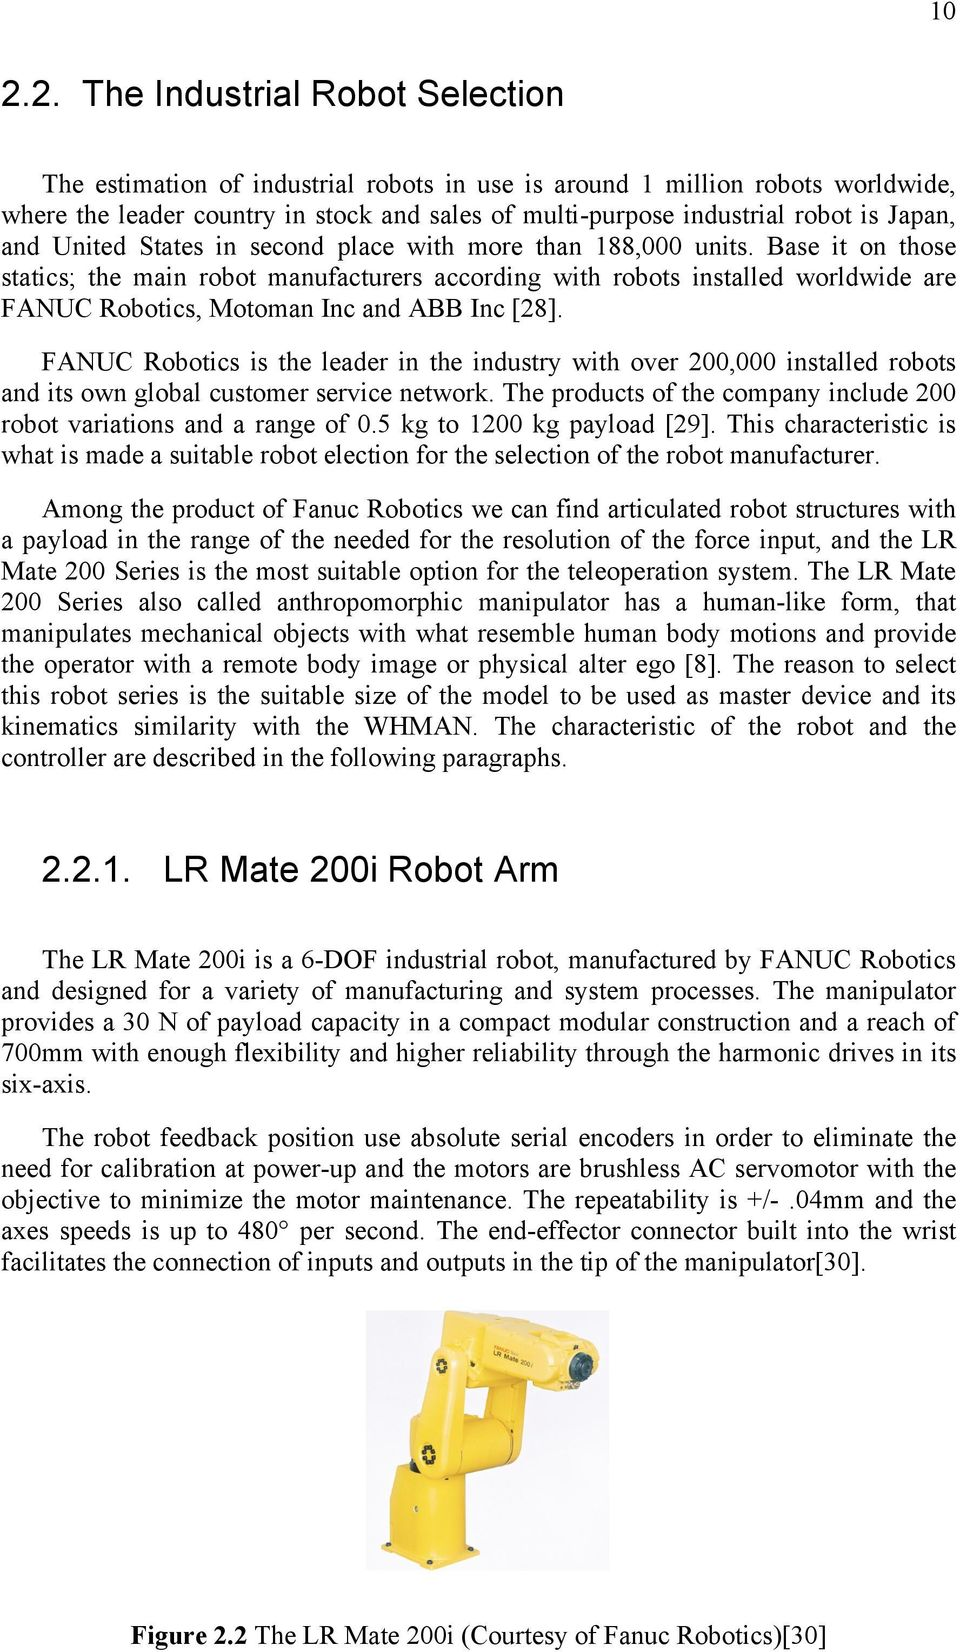 Fanuc Robot Setting Home Position